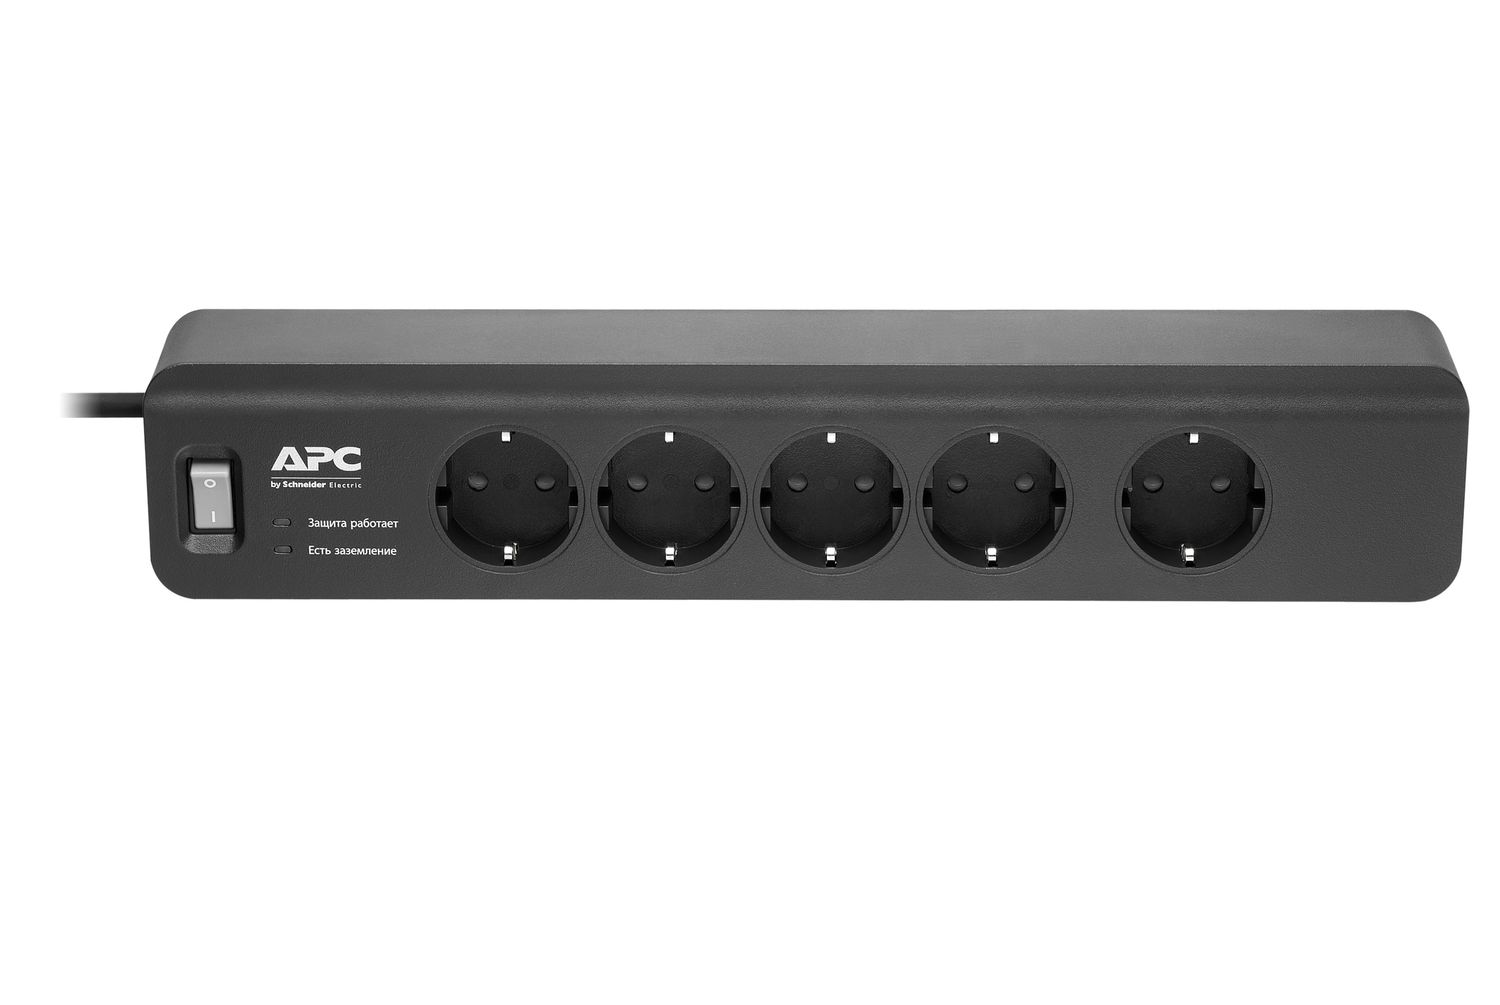 Сетевой фильтр APC Essential SurgeArrest 5 outlets 230V Russia (PM5B-RS)